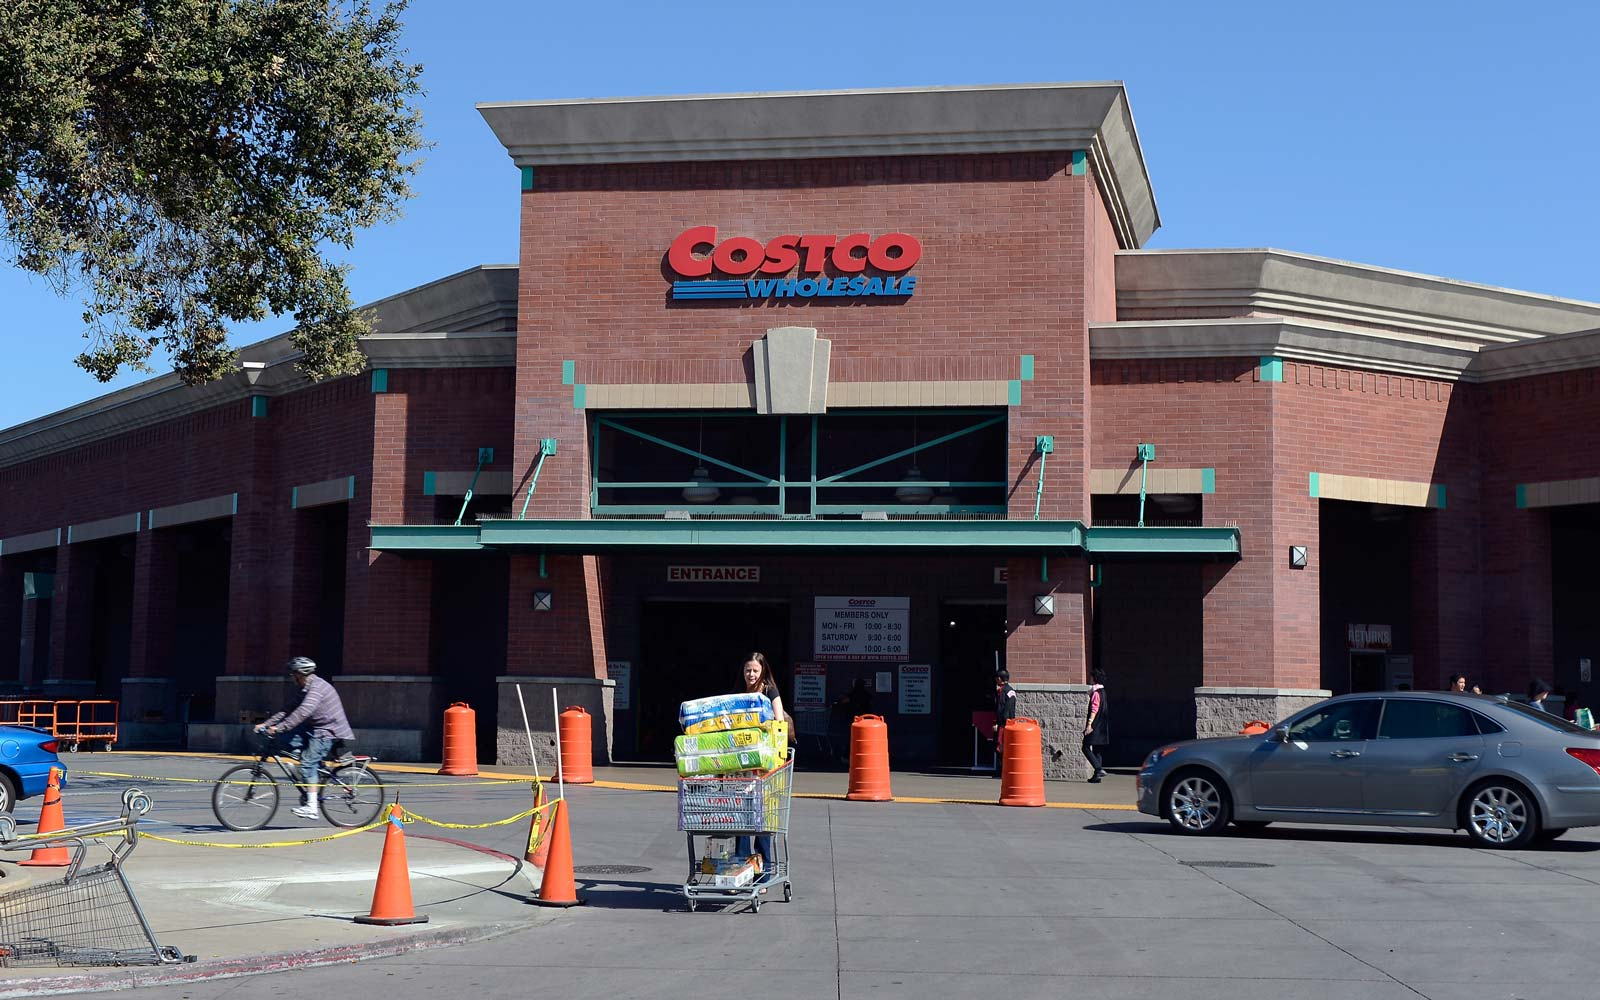 Customers shop at Costco on March 12, 2013 in Los Angeles, California